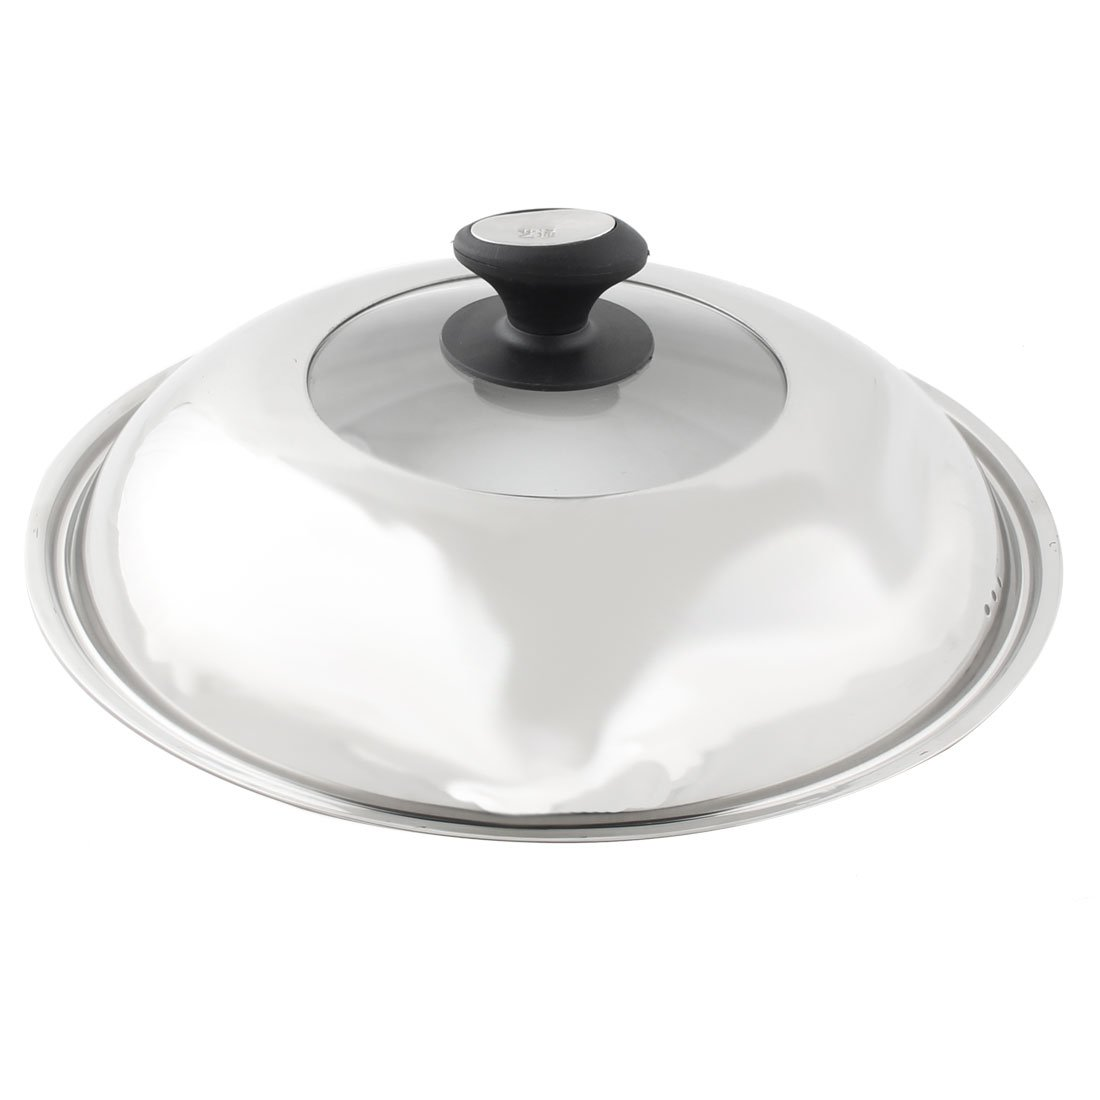 uxcell Stainless Steel Home Kitchen Cooker Pot Skillet Frying Pan Knob Lid Cover 32cm Dia a16052700ux0479